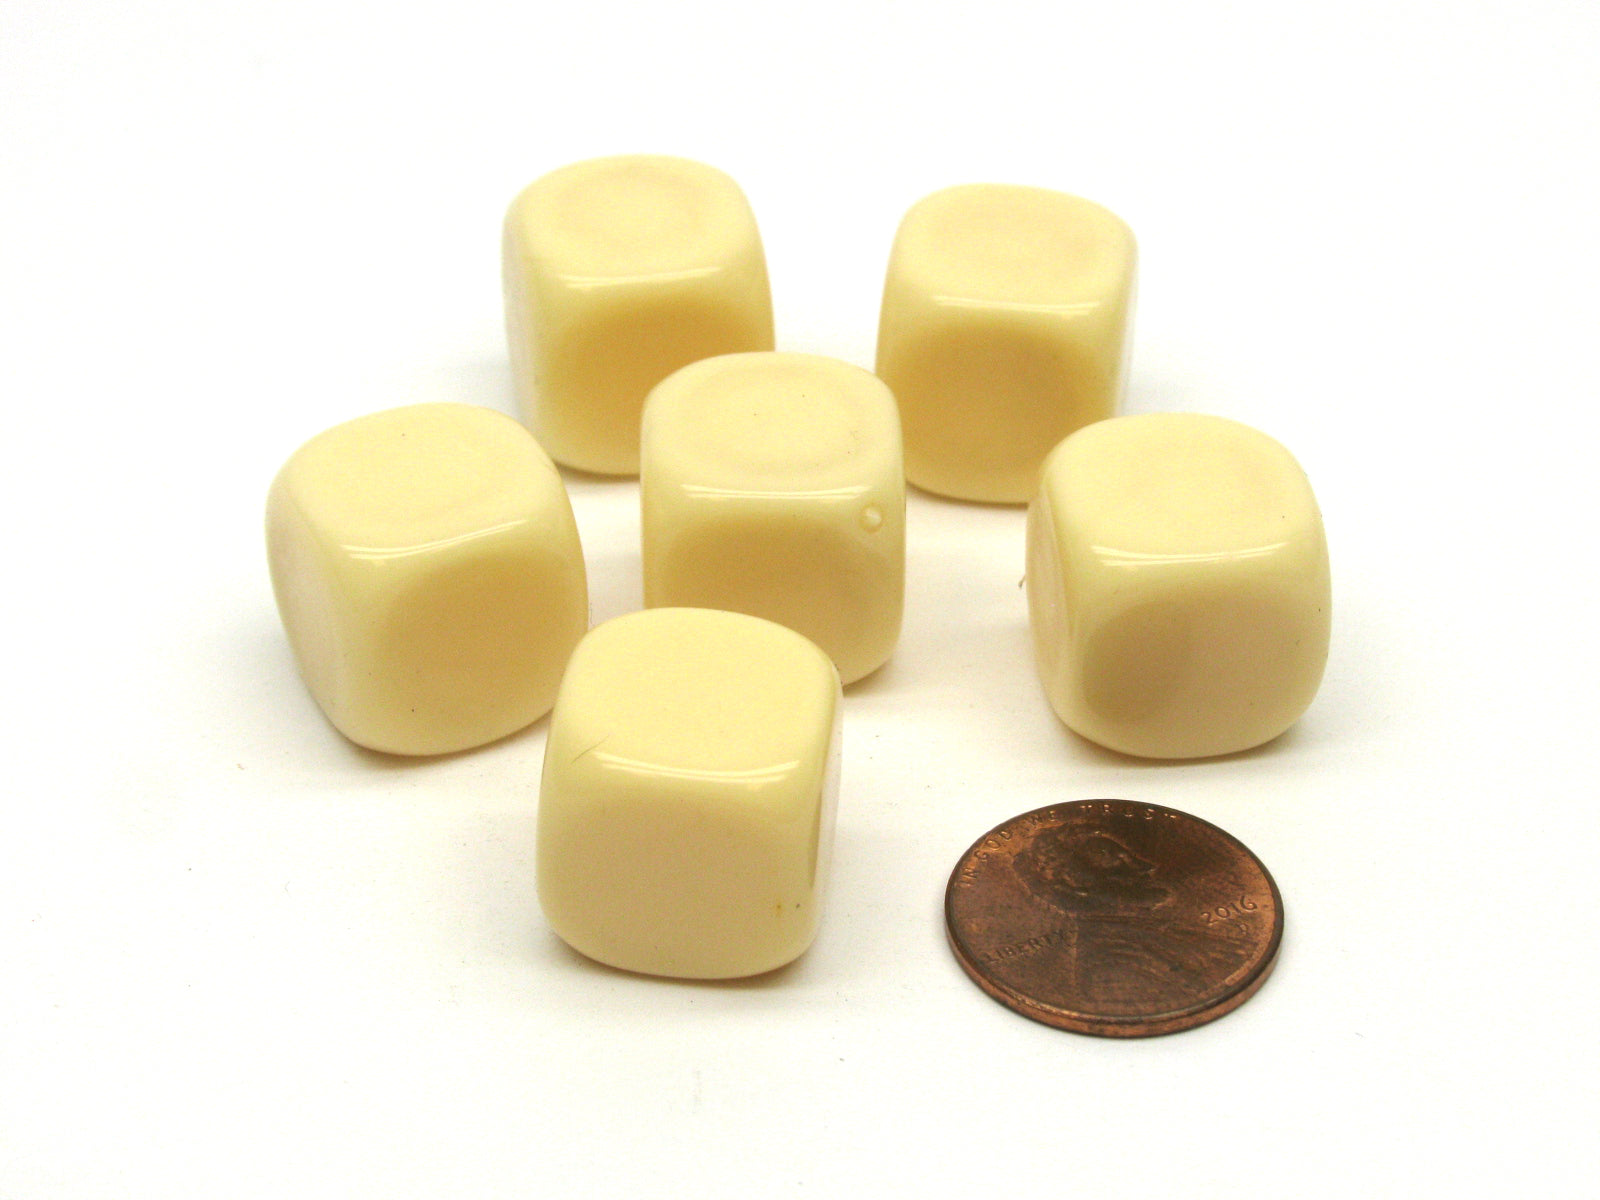 Opaque 15mm D6 Blank Chessex Dice with Rounded Corners, 6 Pieces - Ivory